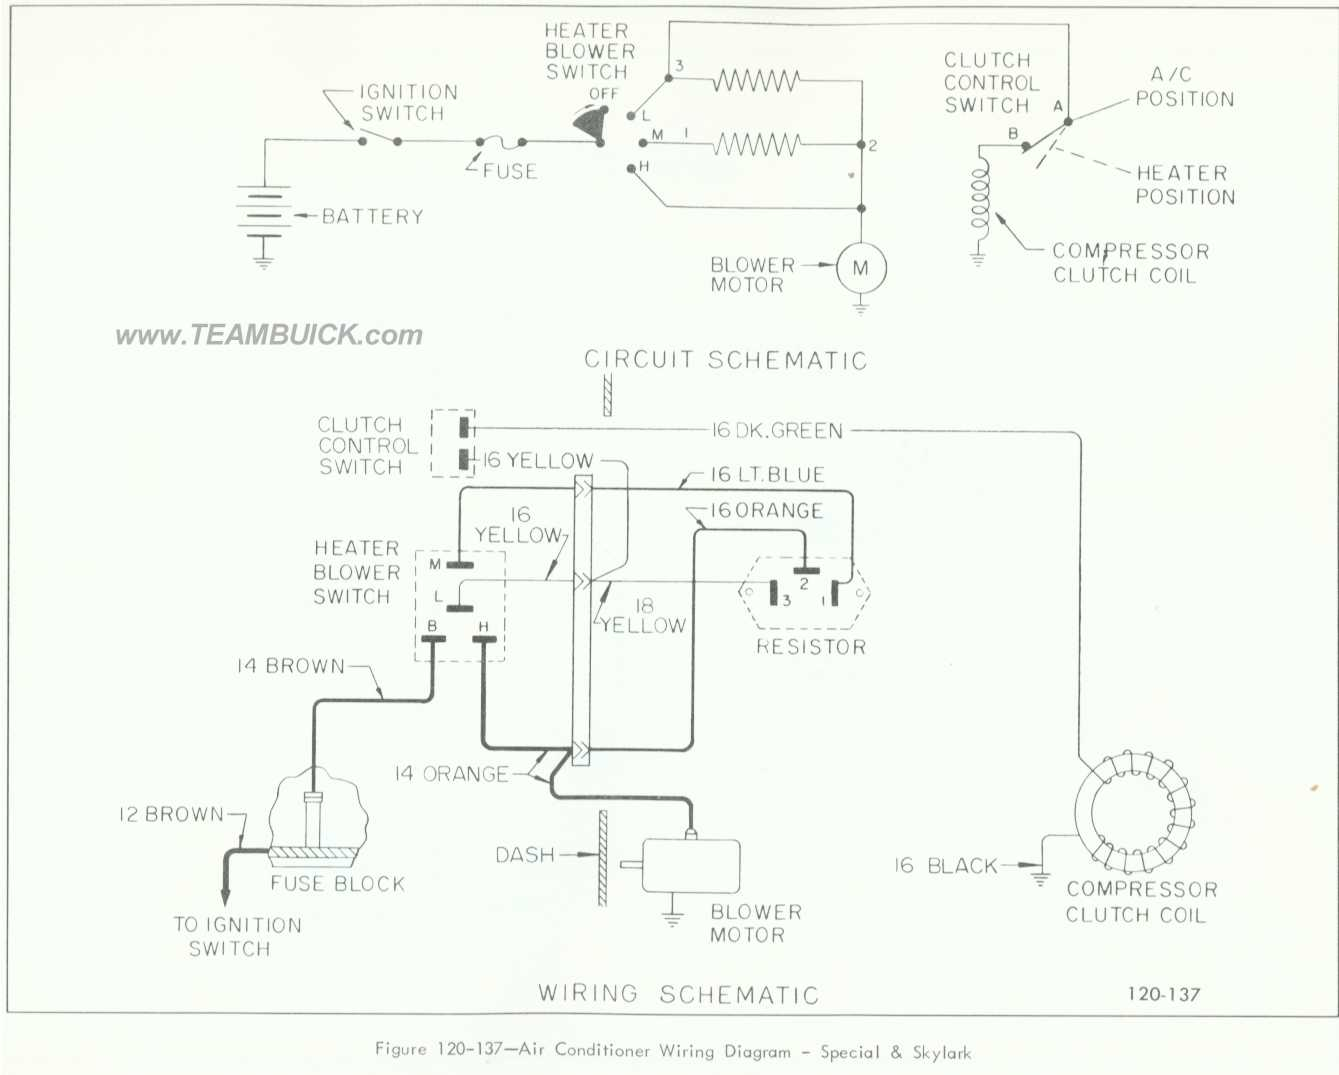 wiring diagram for 1968 buick skylark schematics wiring diagrams u2022 rh orwellvets co 1972 buick skylark engine wiring diagram 1972 buick skylark engine wiring diagram